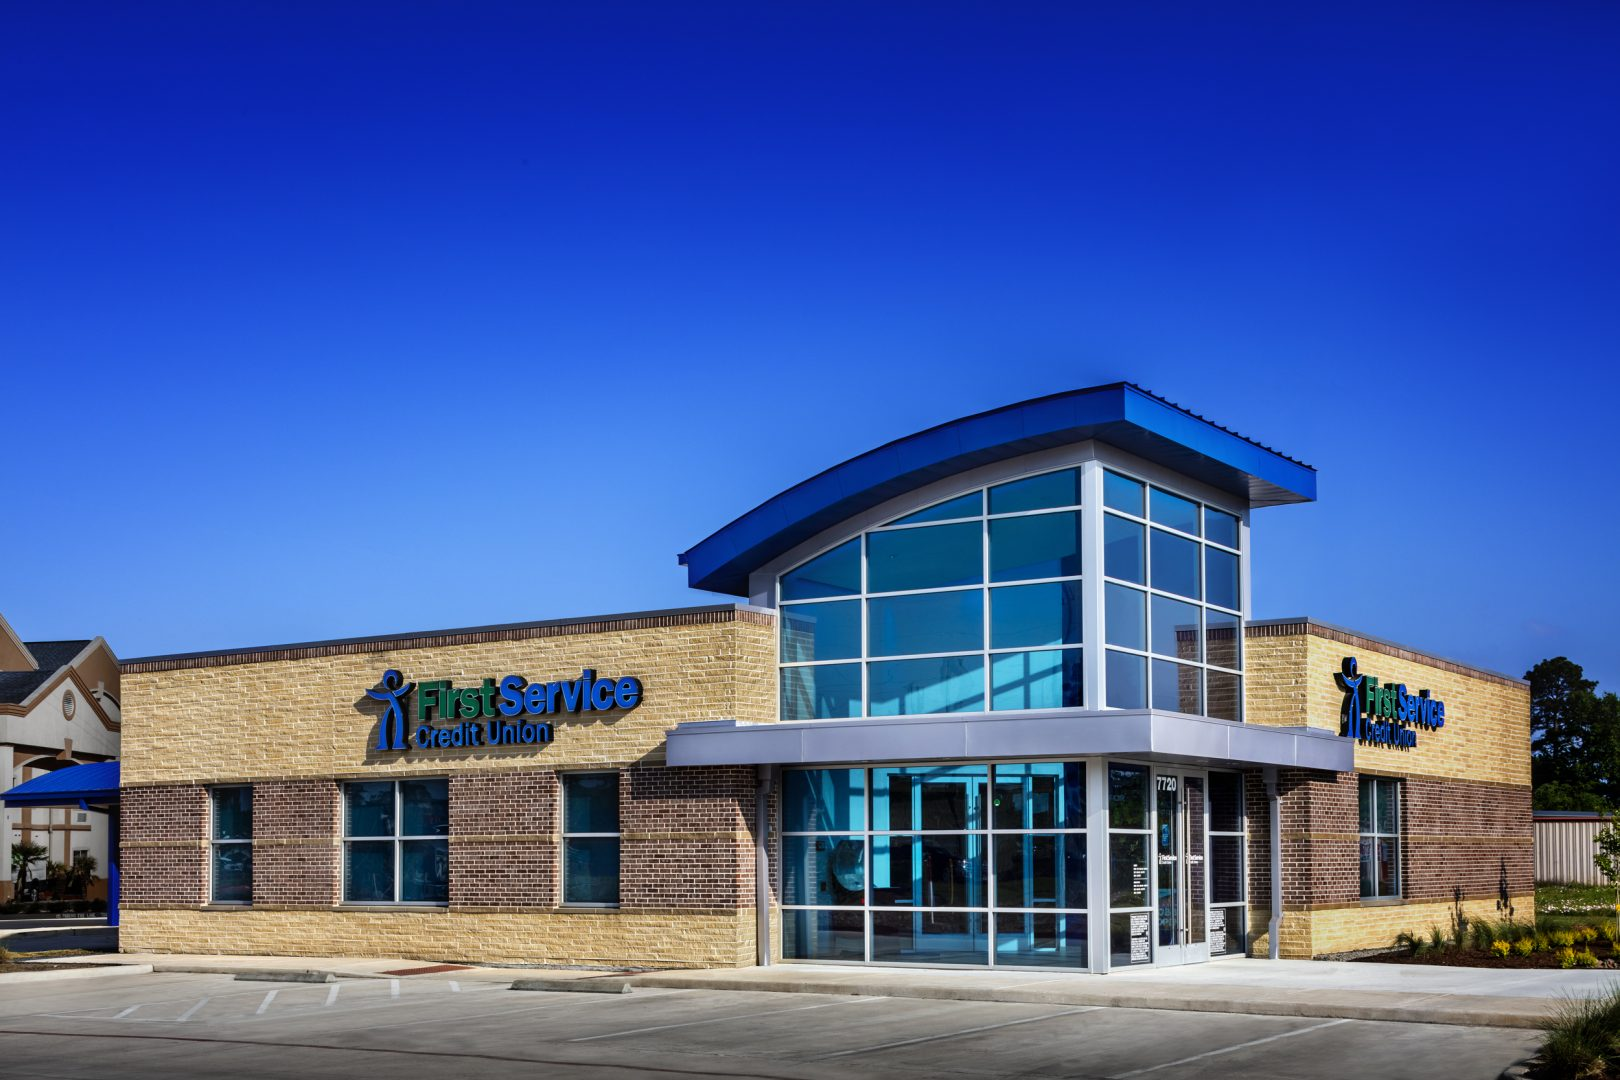 First-Service-Credit-Union-Bank-Building-Atascocita